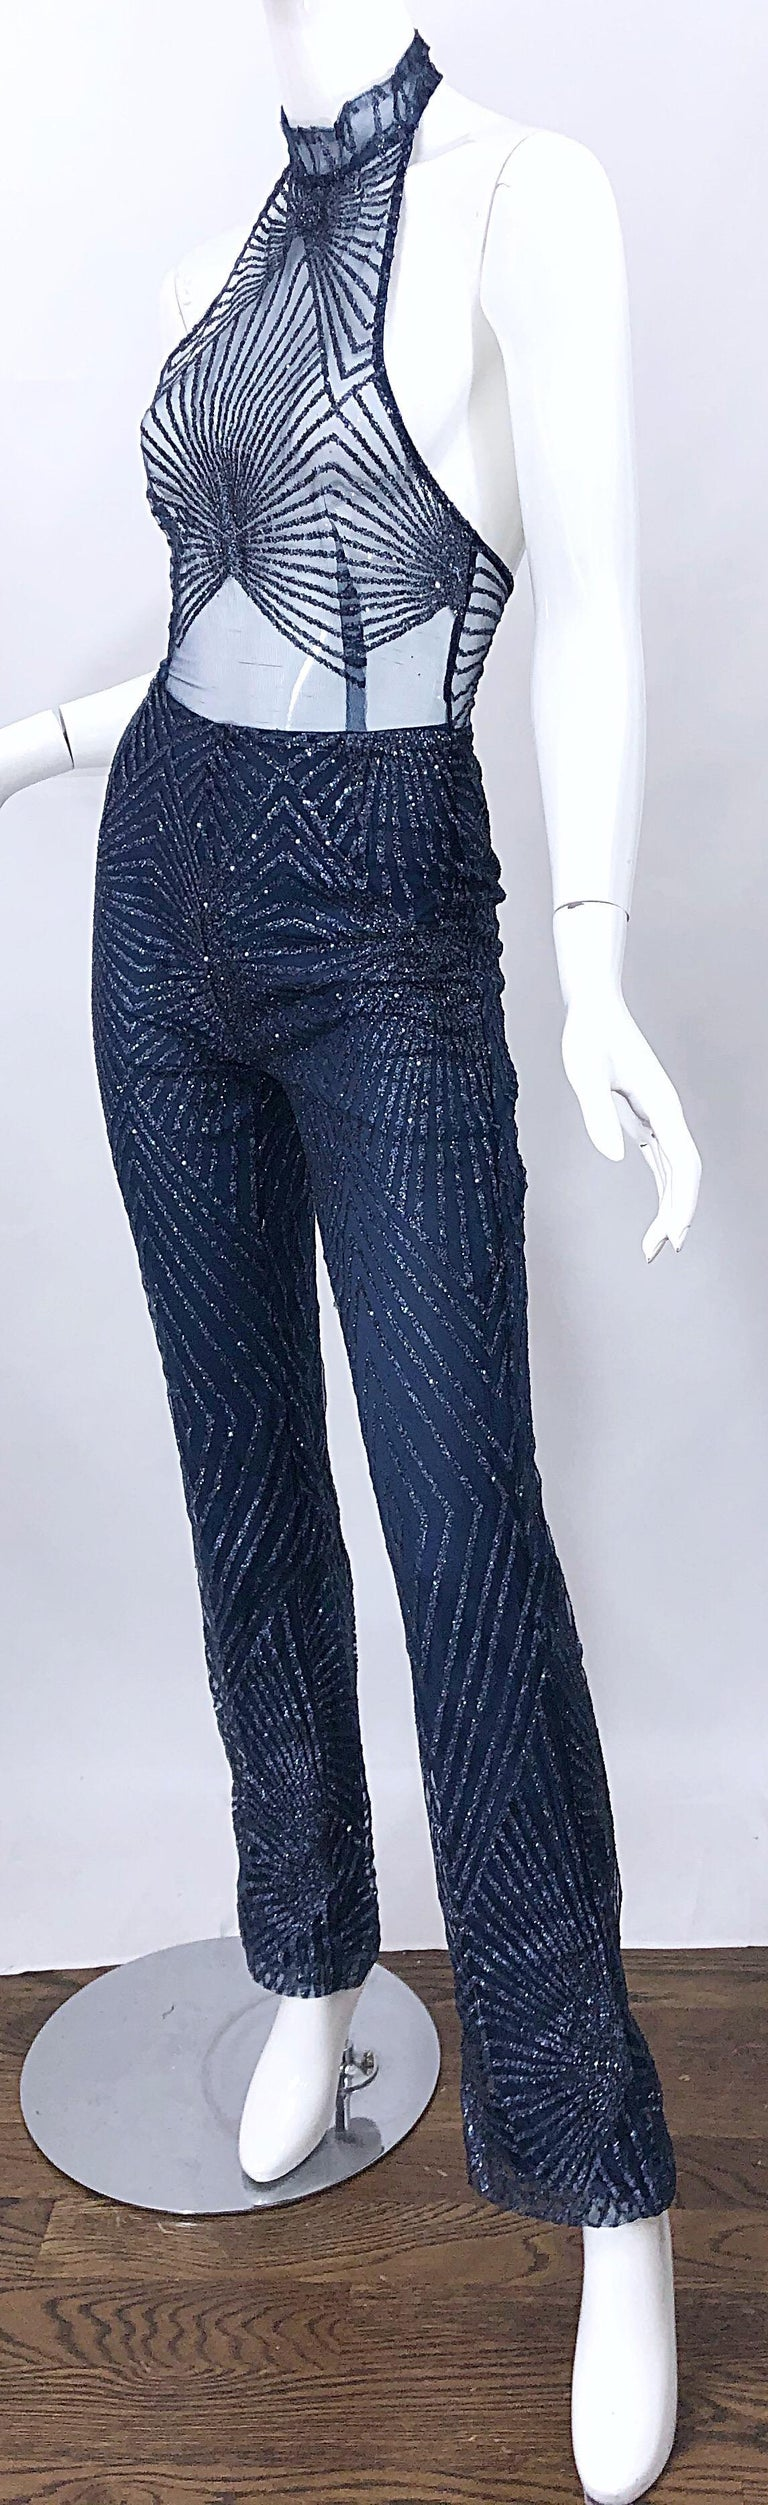 1990s Does 1970s Navy Blue Sheer Mesh Glitter Vintage 90s Sexy Halter Jumpsuit For Sale 11